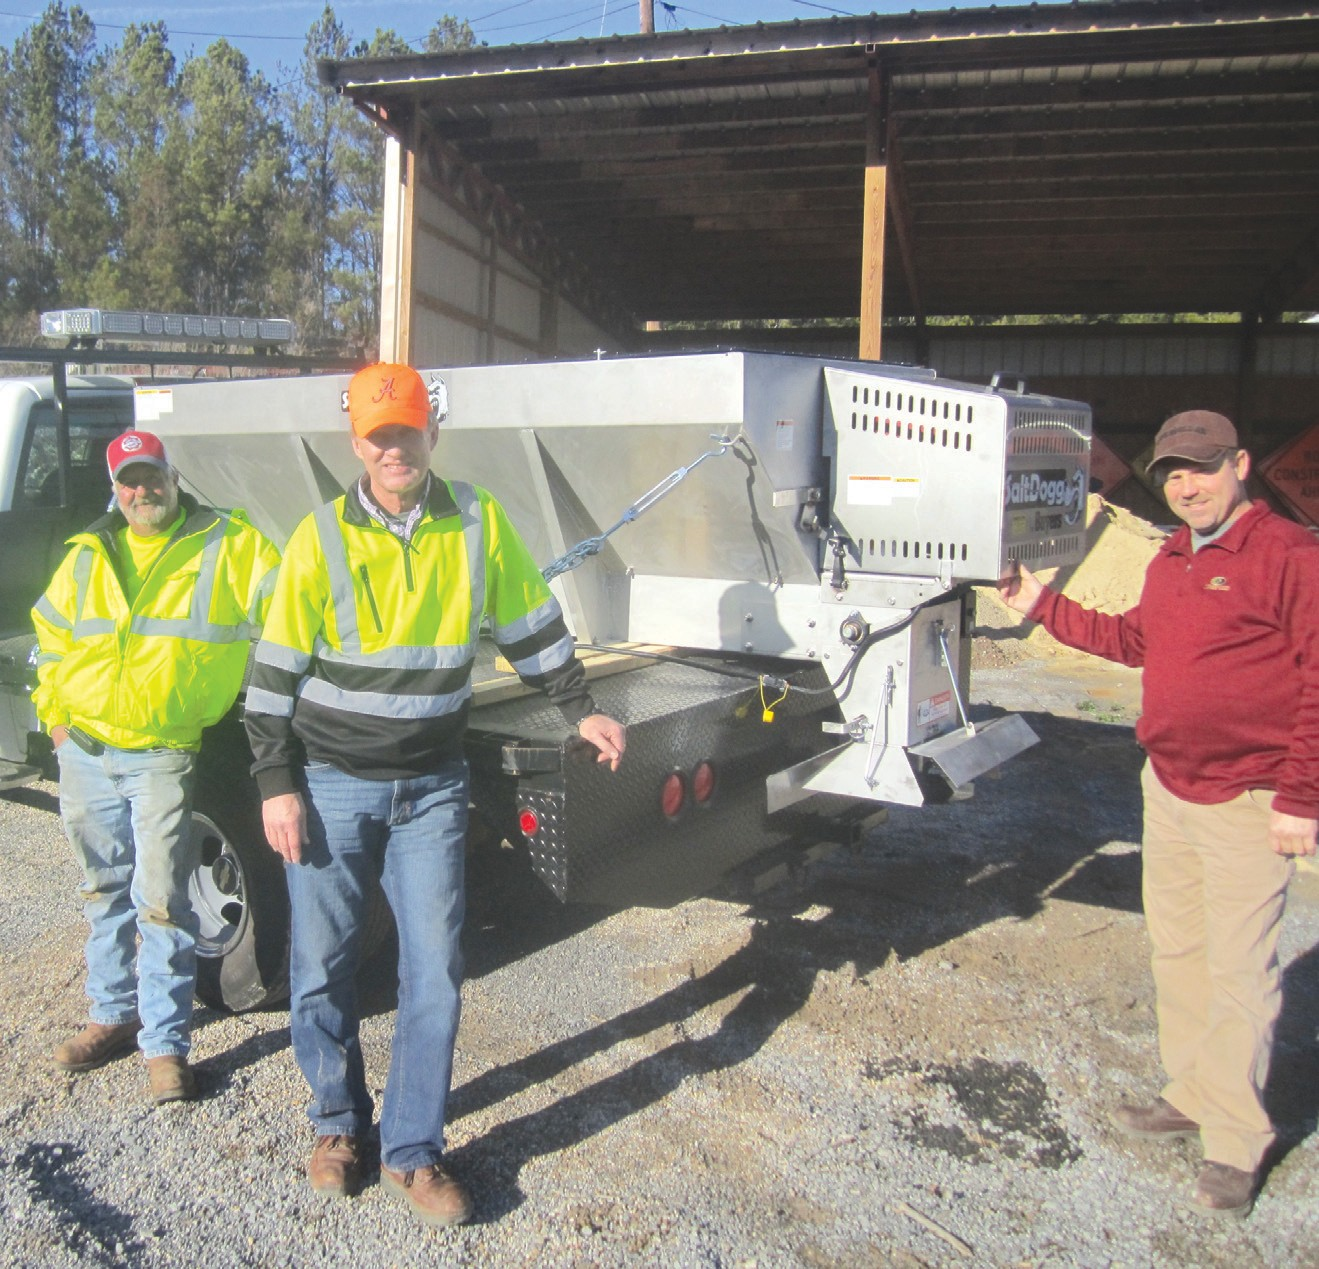 District 3 workers show off shiny new spreader which has just been mounted on a flatbed truck for use this winter. From the left, mechanic David Kemp, foreman Jimmy Hicks, and District 3 Commissioner Dean Calvert.